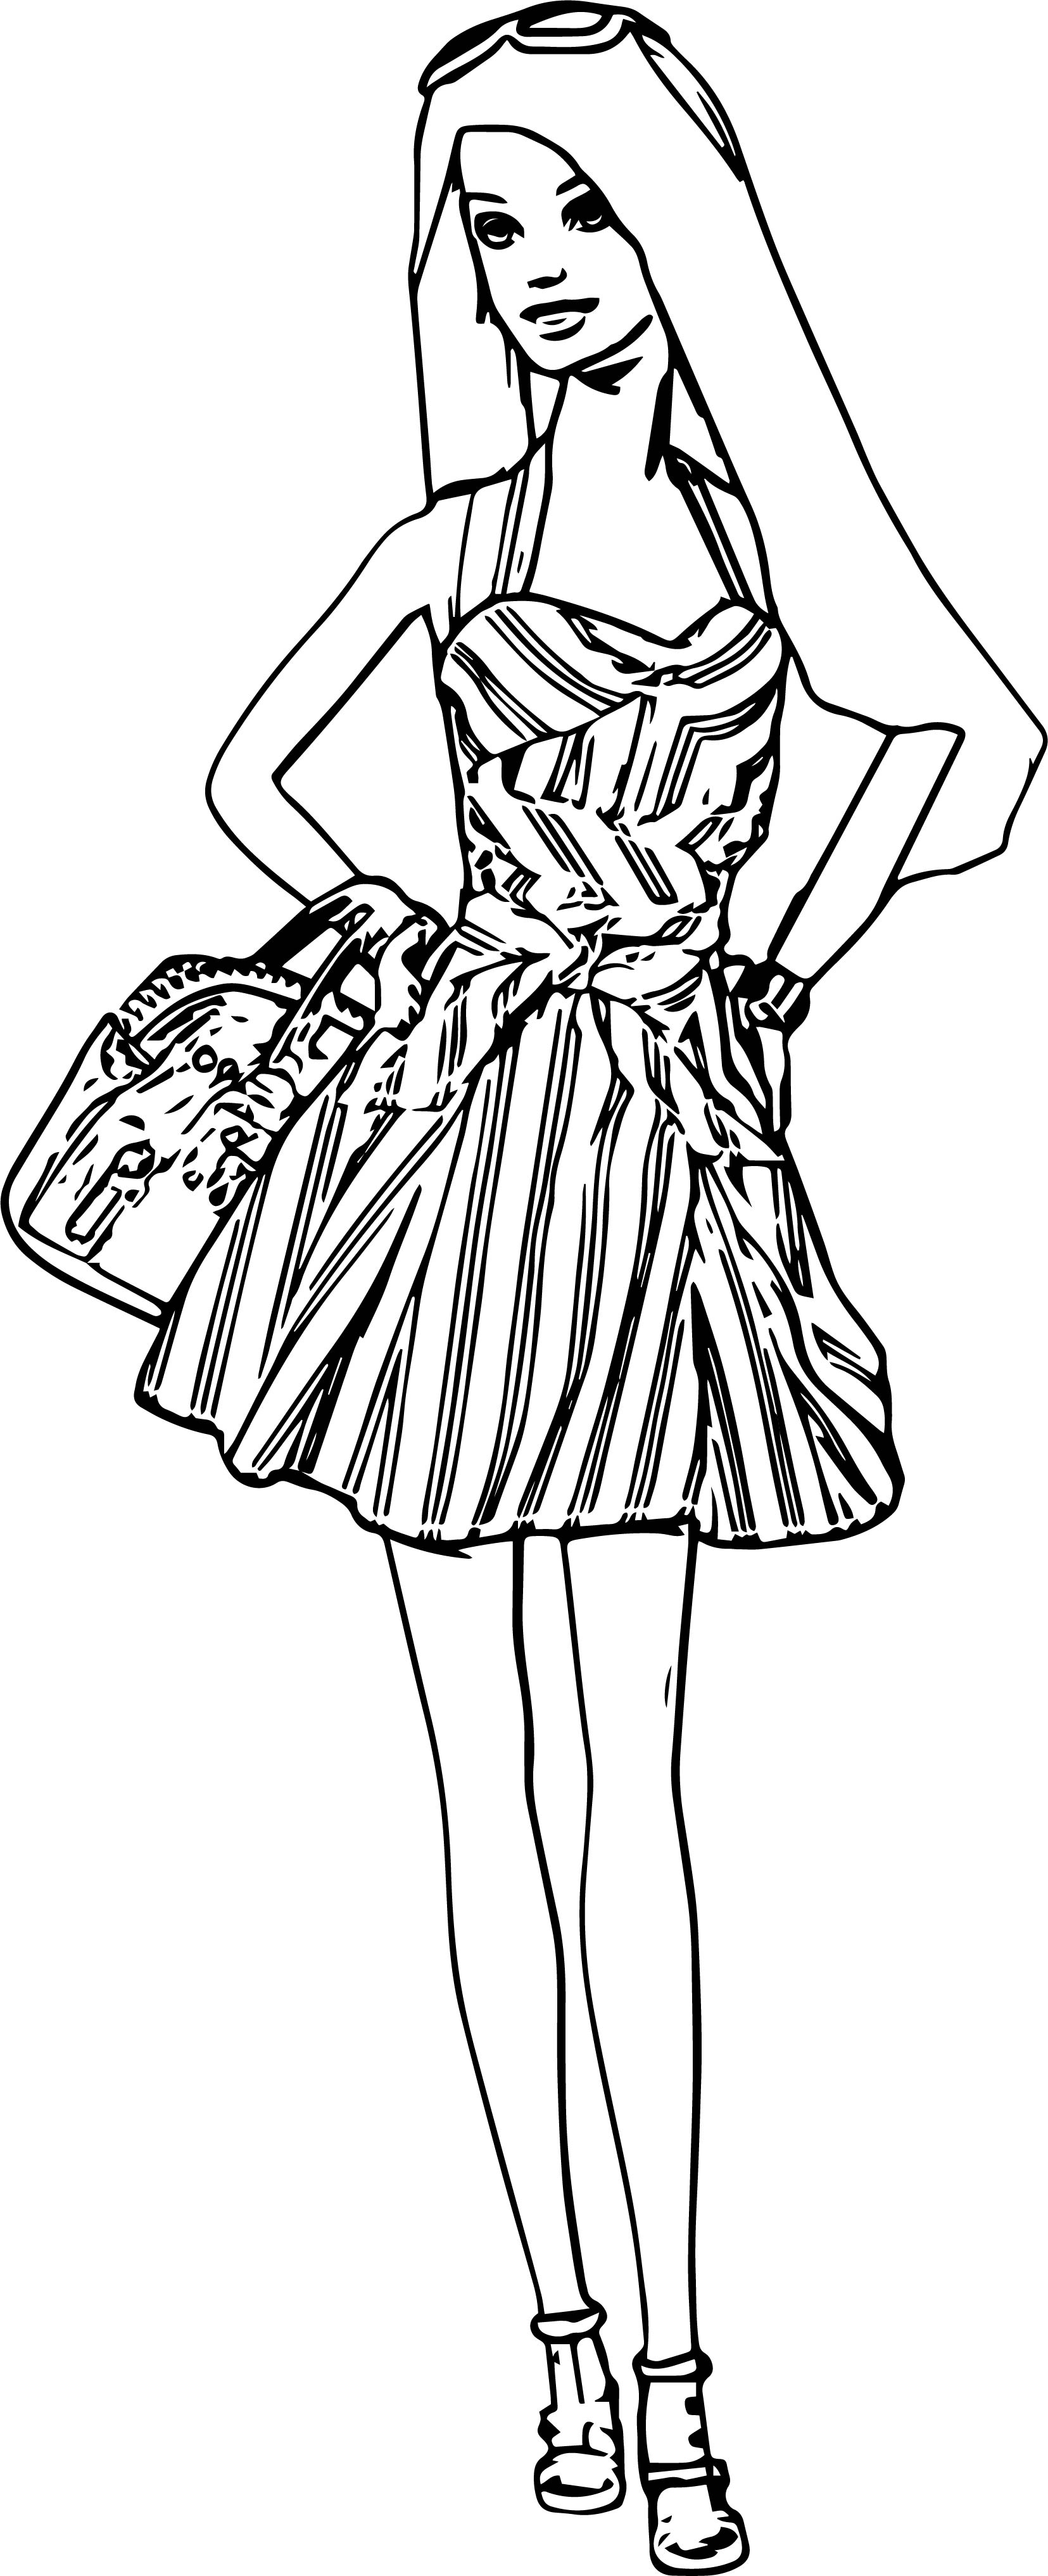 Barbie Dress Pose Time Coloring Page